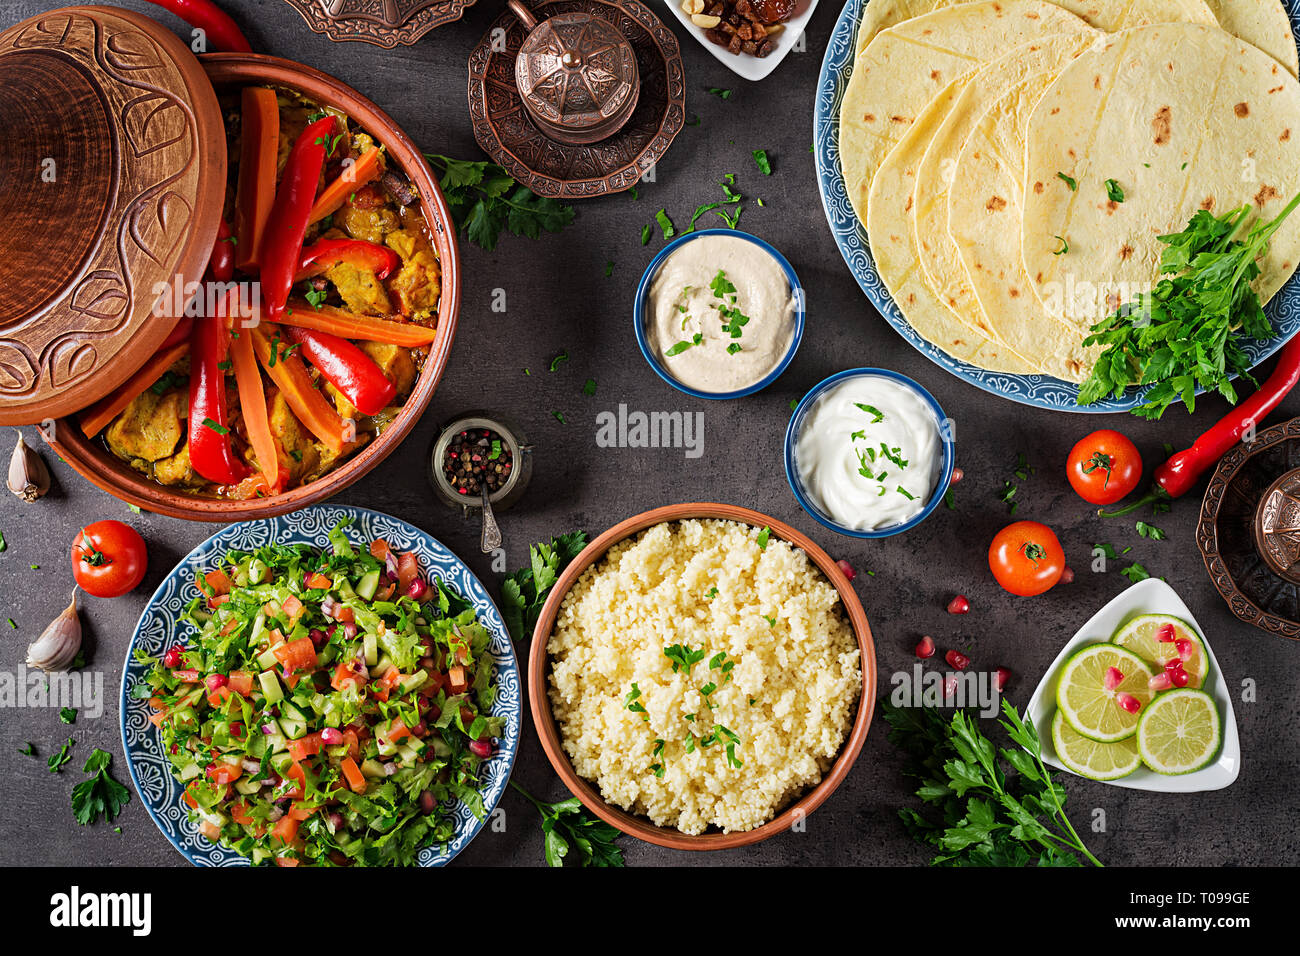 Moroccan food. Traditional tajine dishes, couscous  and fresh salad  on rustic wooden table. Tagine chicken meat and vegetables. Arabian cuisine. Top  Stock Photo